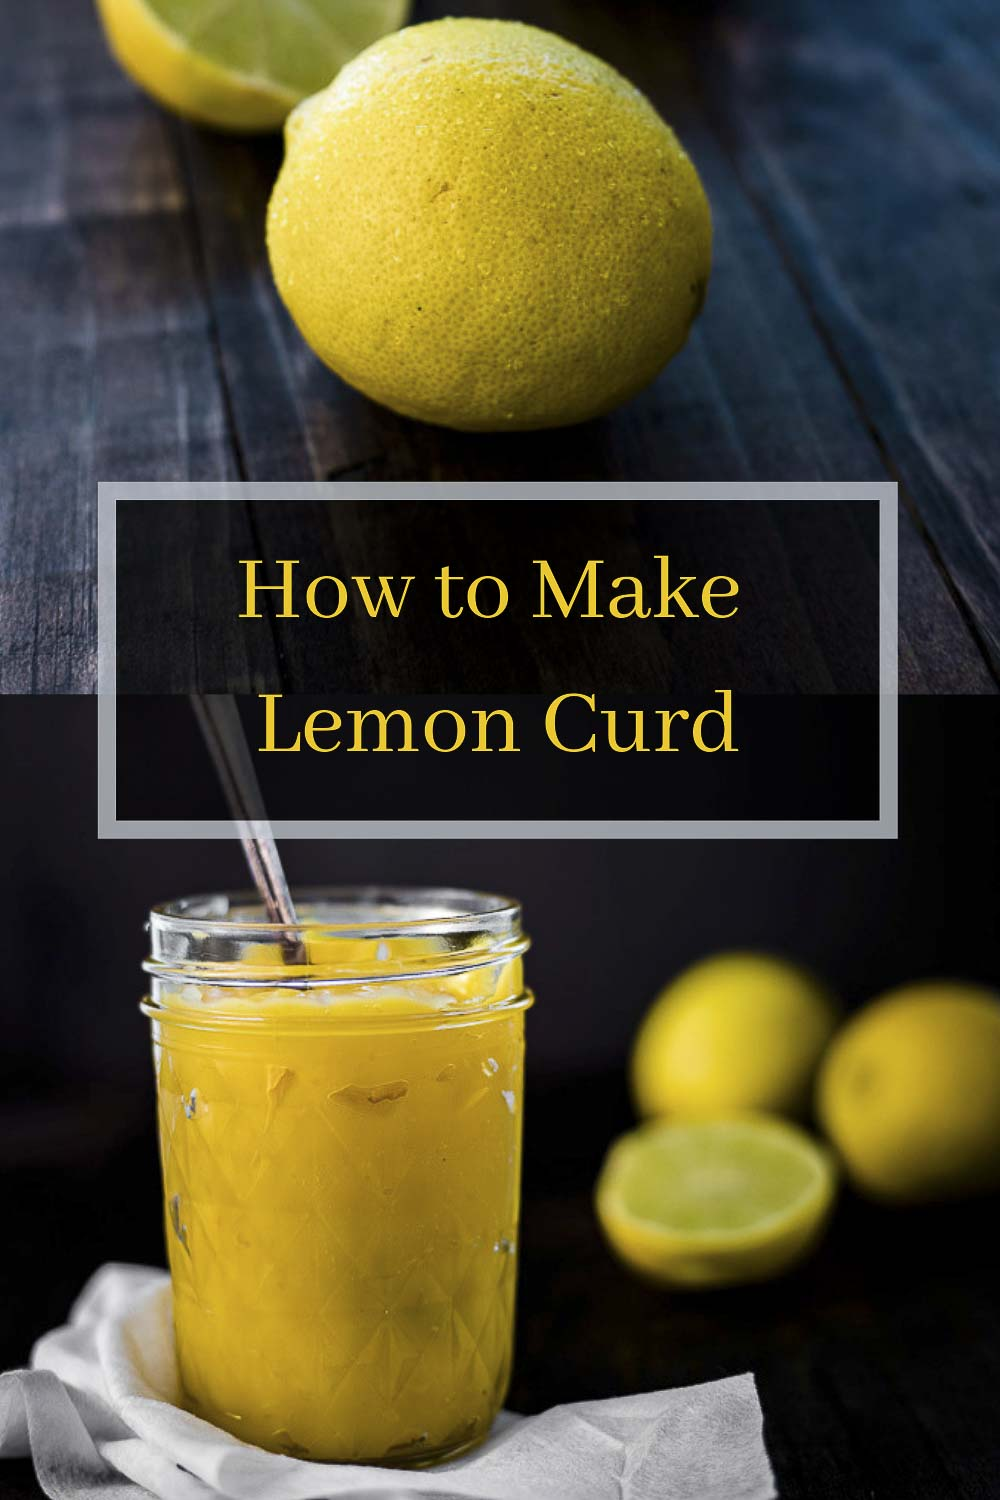 Sweet, tangy, rich and creamy, learn how to make Lemon Curd in under 30 minutes with step-by-step instructions and photos. Homemade lemon curd  is so much better than store bought and it\'s easy! Put this easy lemon curd on scones, toast, or muffins, or use it to bake cakes, pies and cookies. Or eat it with a spoon...#wenthere8this #homemadelemoncurd #meyerlemoncurd